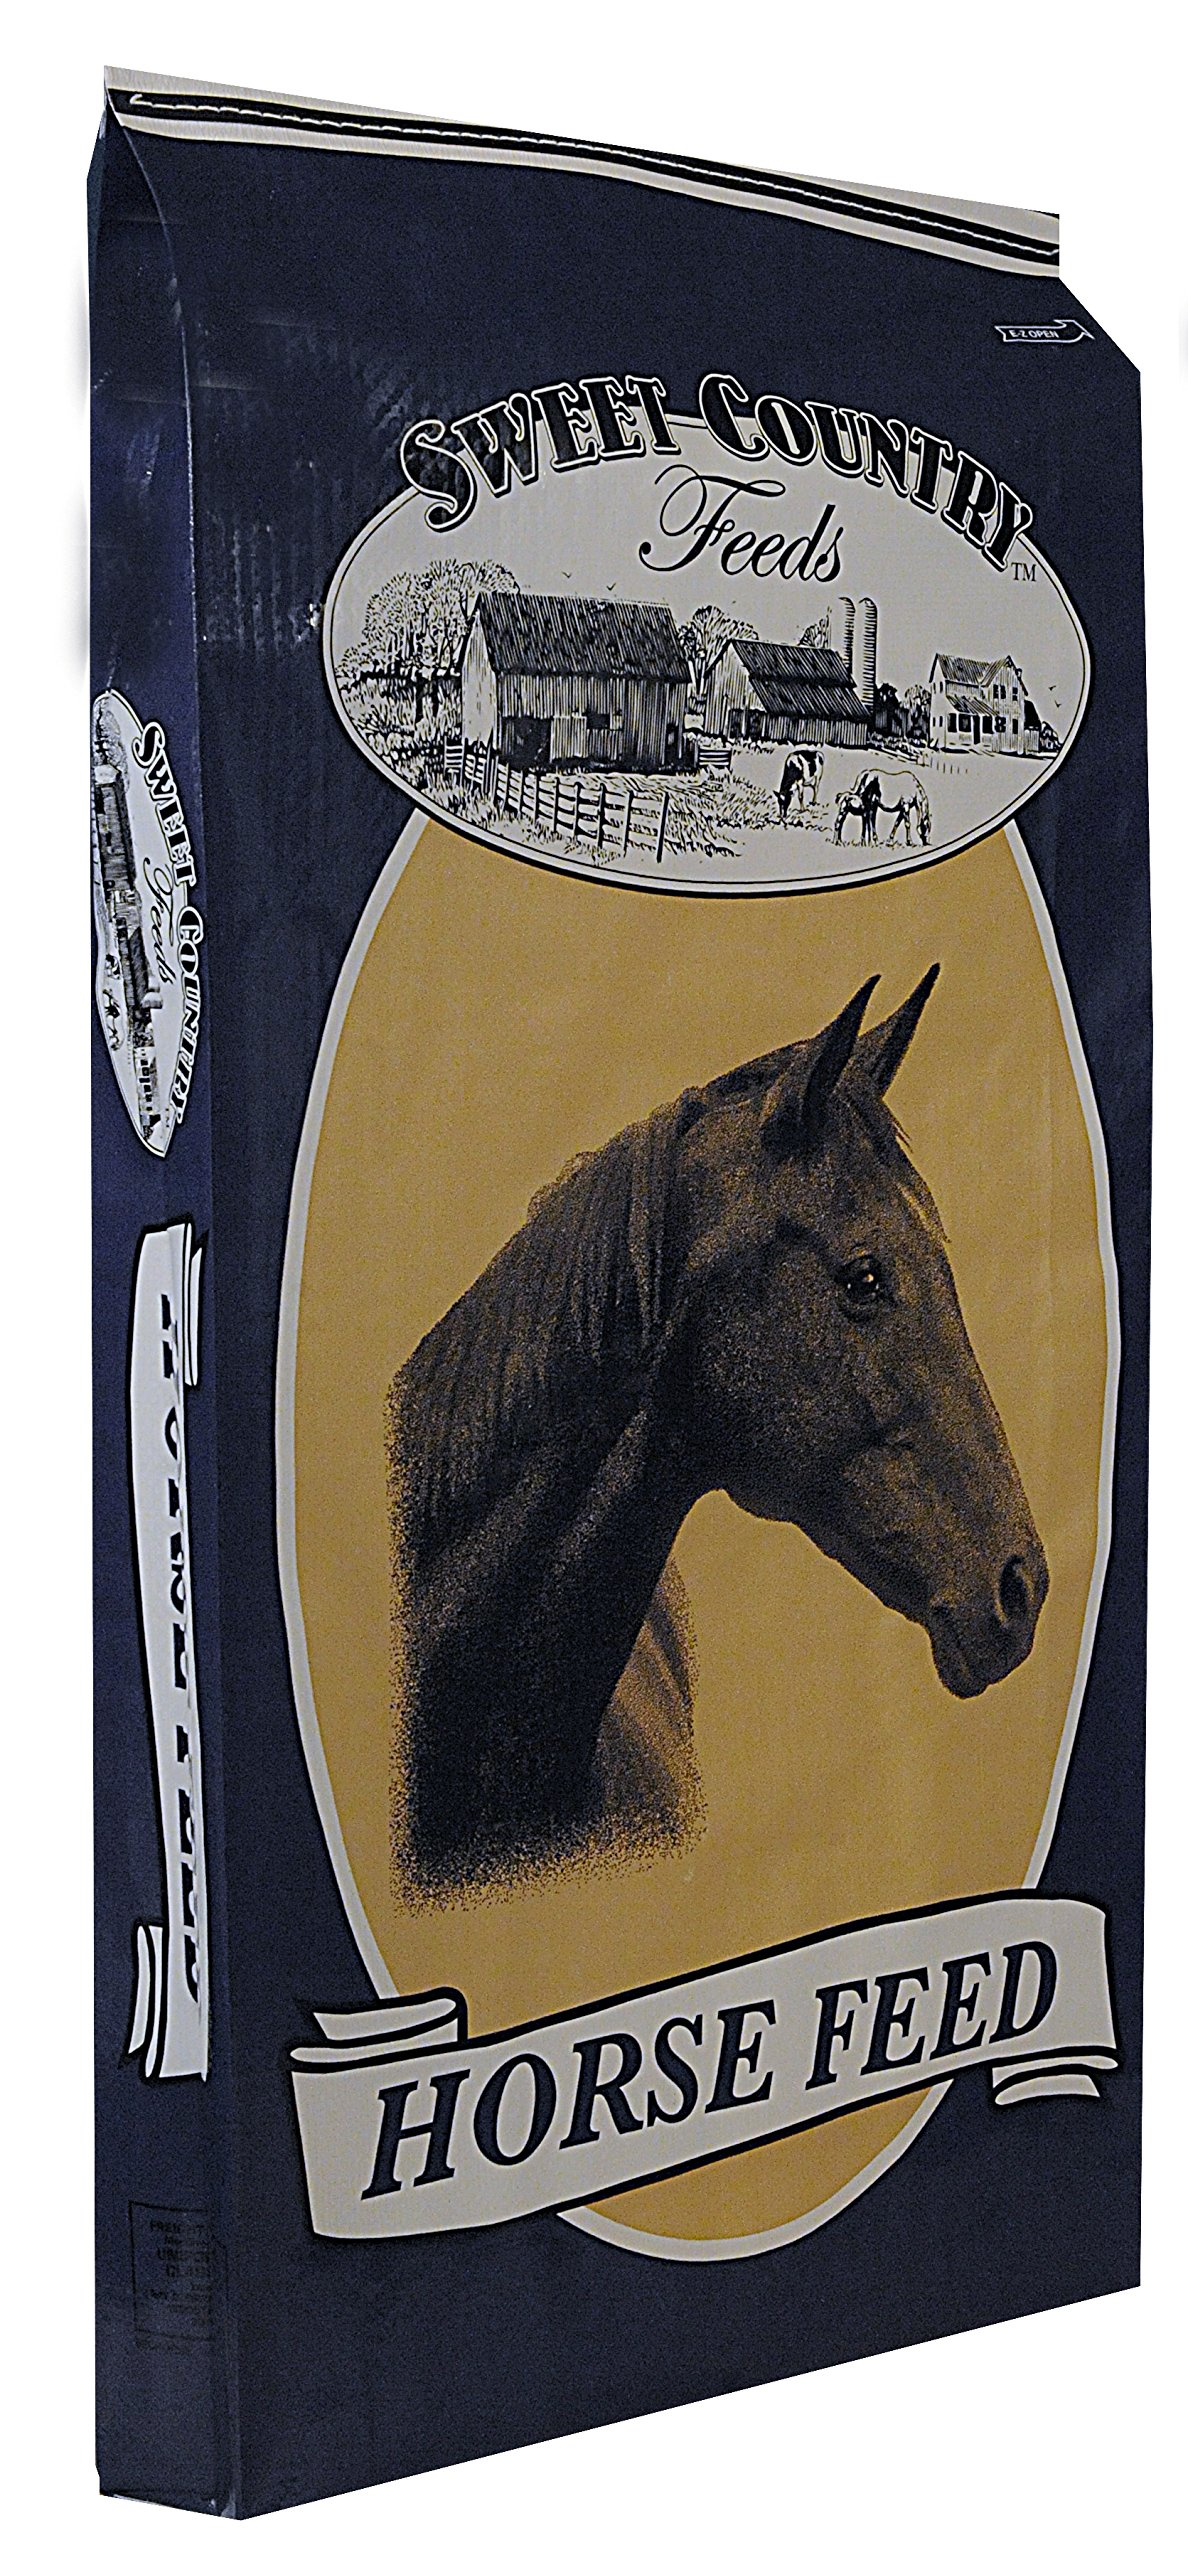 Kalmbach Feeds Sweet Country Plain 12 Pellet Horse Feed for Horse, 50 lb